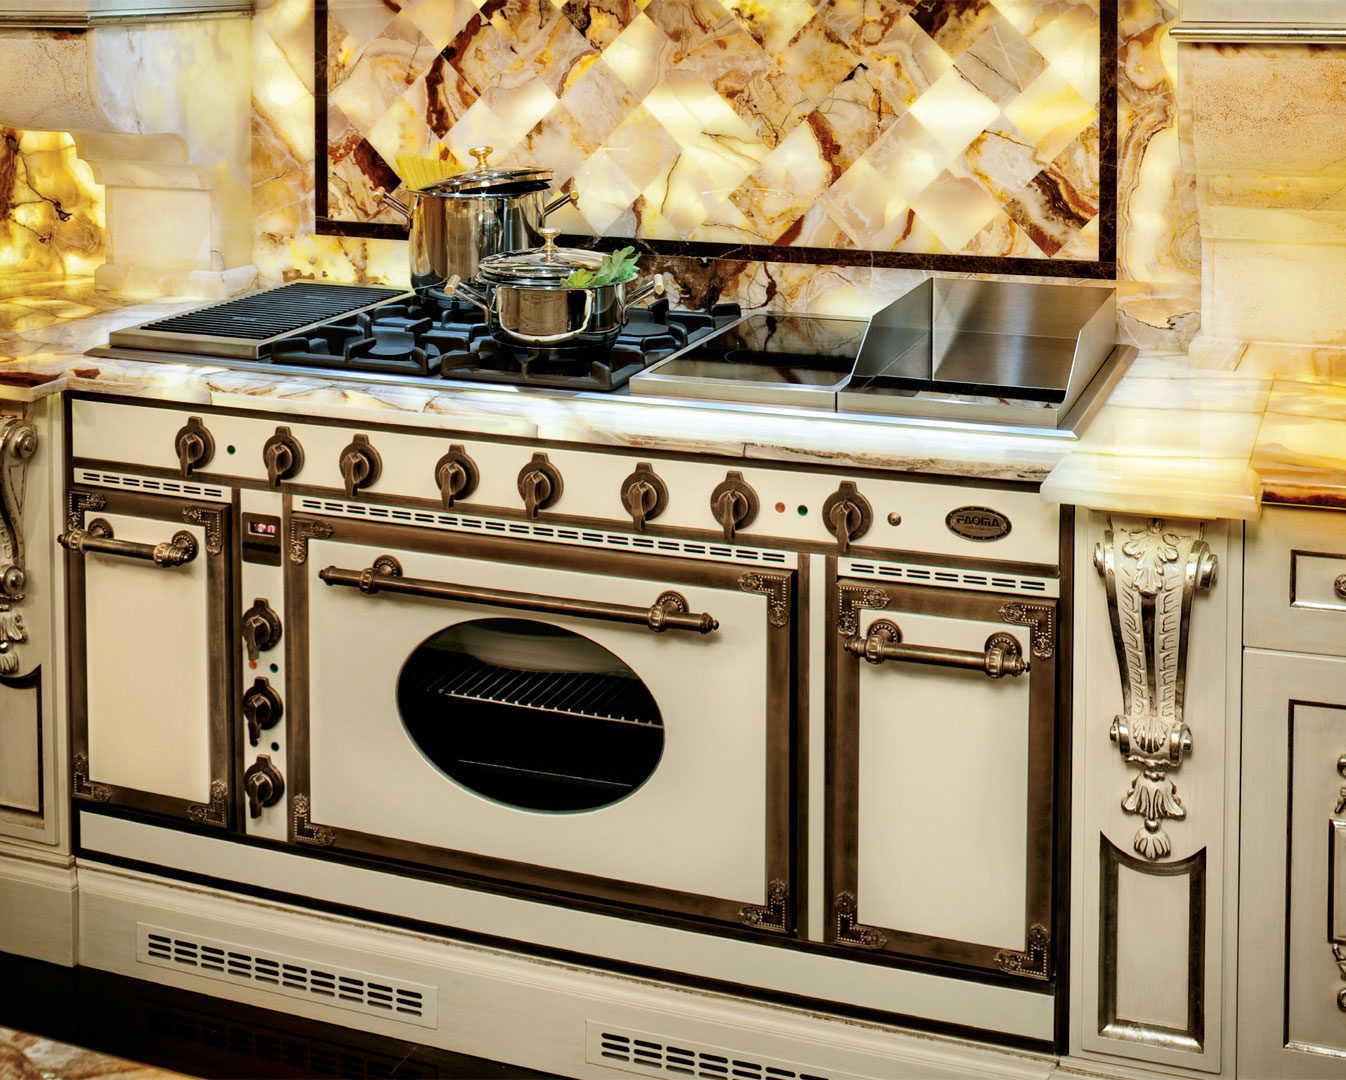 Inbuilt and custom made cooker complete with antiqued brass profiles and buttons